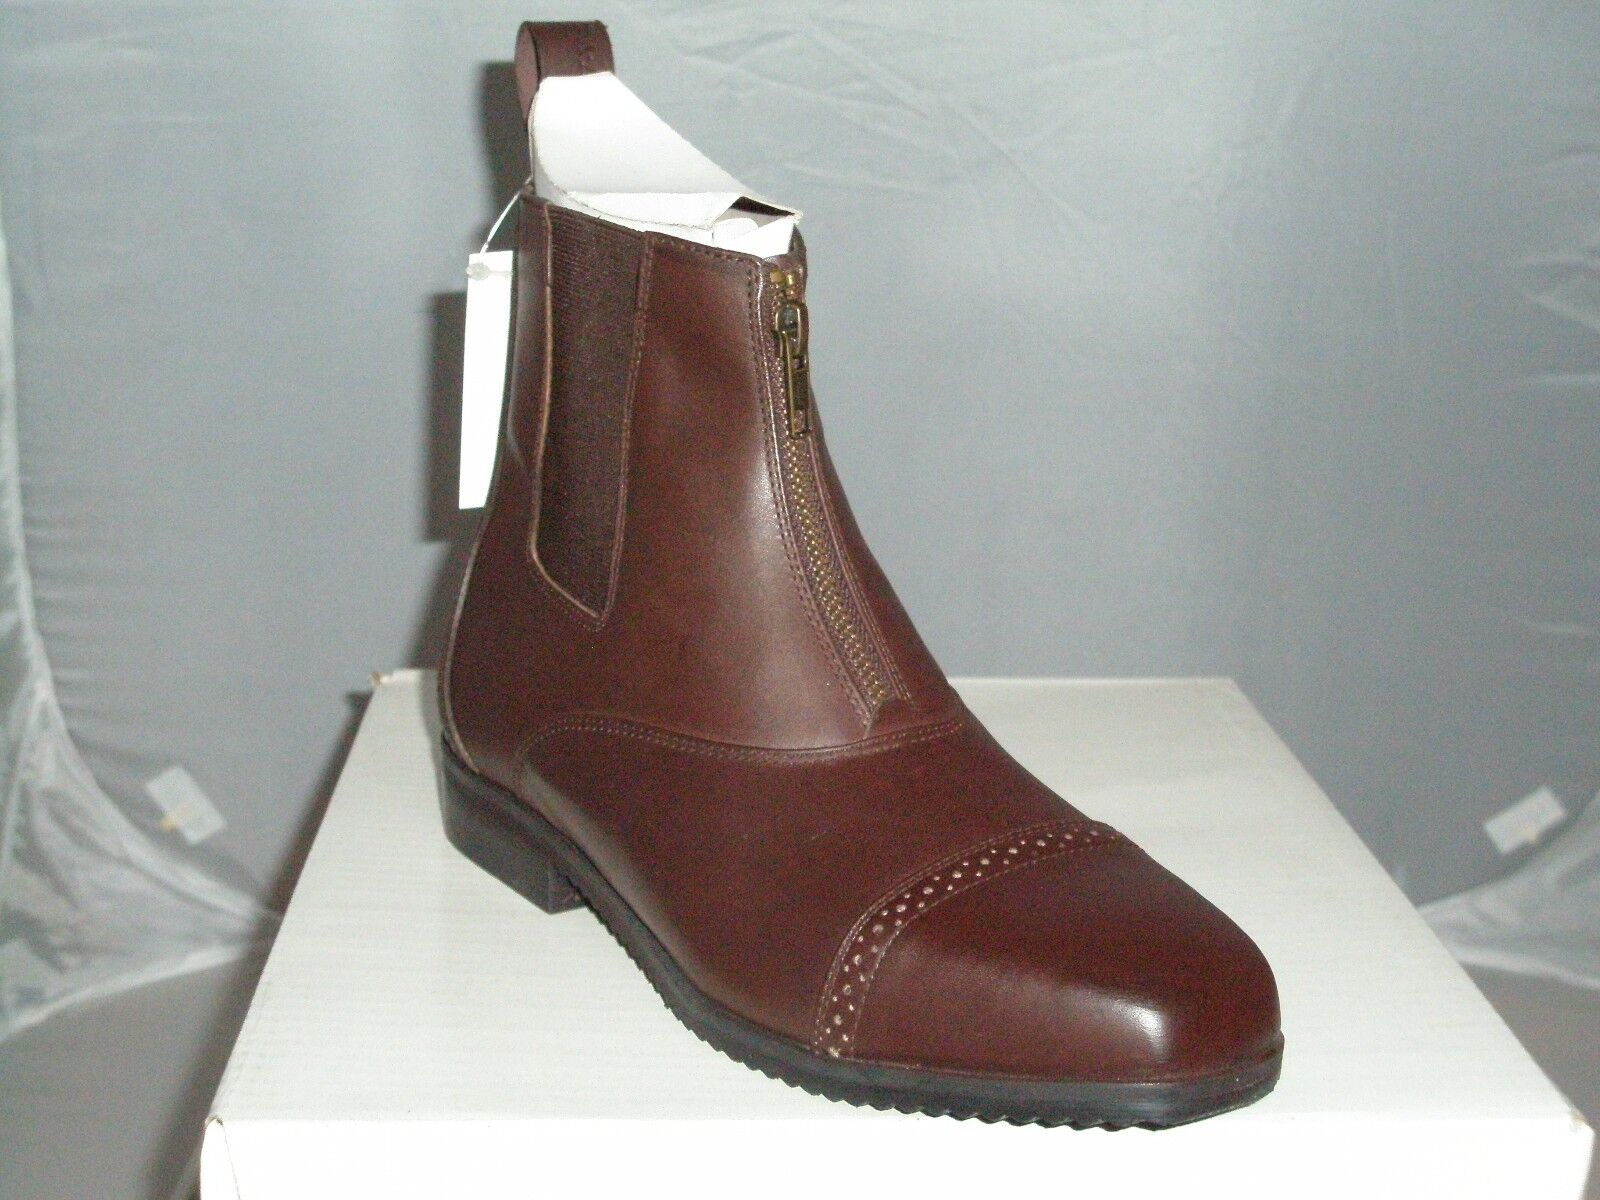 The English Company EQVVS Althorpe Brown Leather Jodhpur Boots With Zips